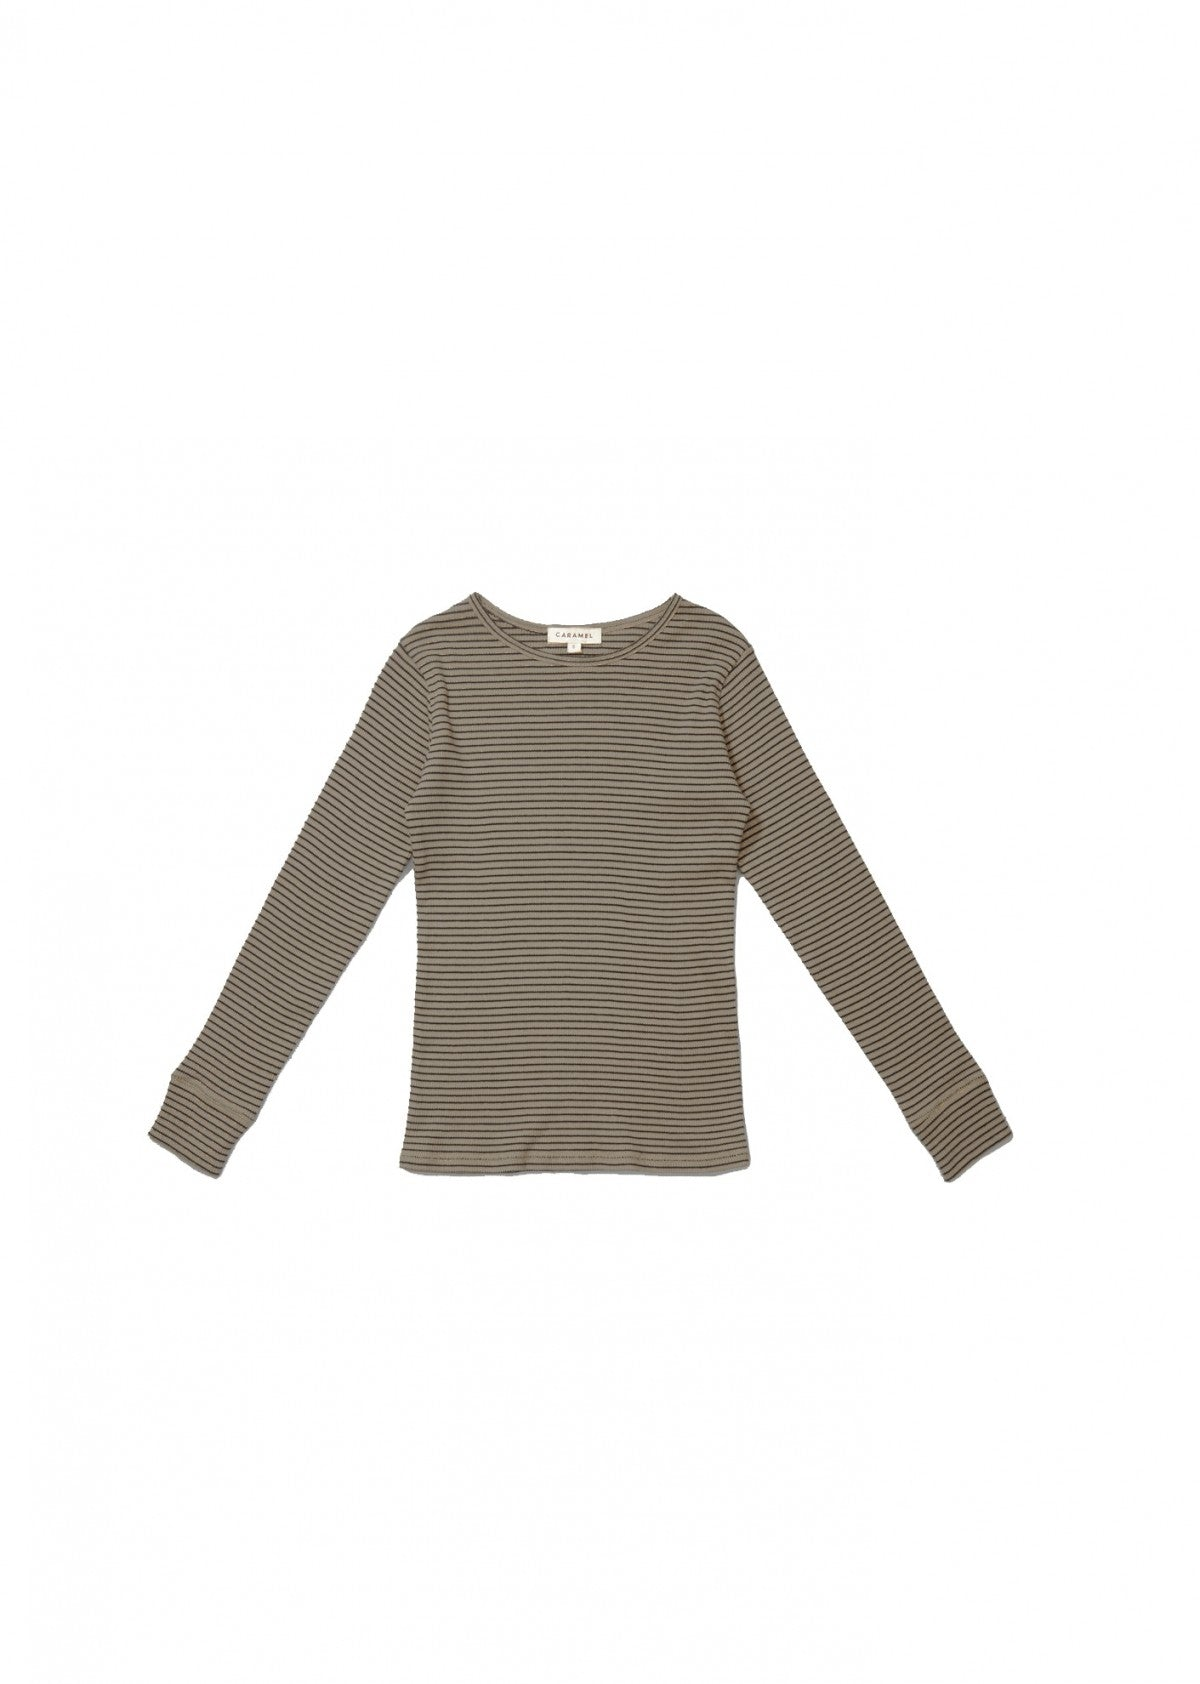 Caramel Jackal Kid's Striped Cotton T-Shirt in Pewter | BIEN BIEN